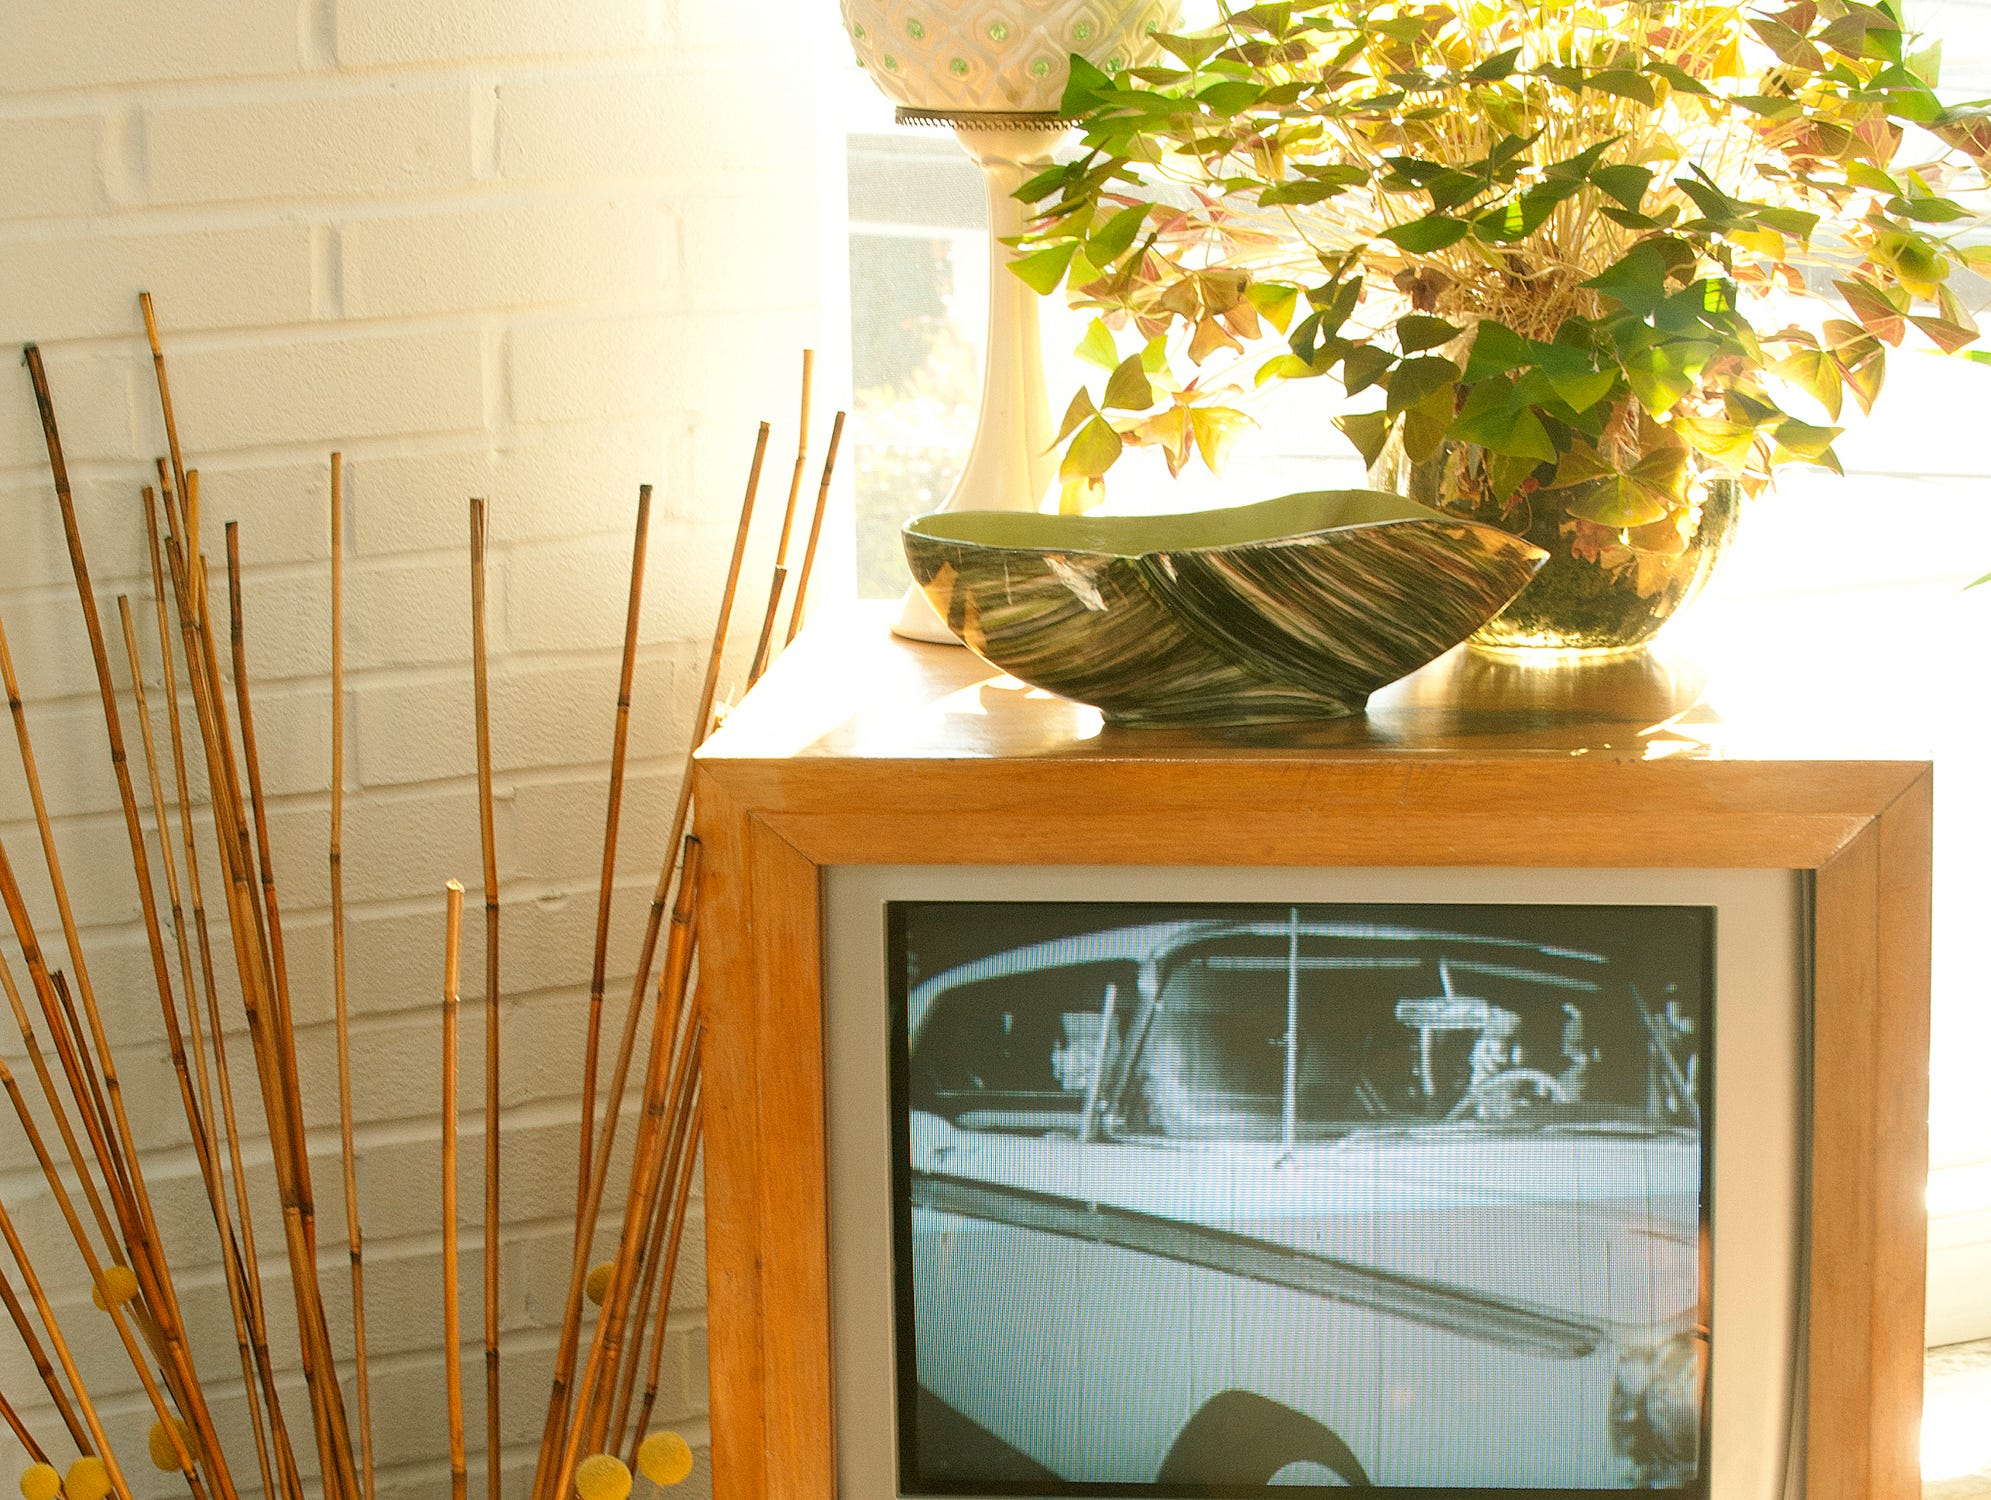 A contemporary cassette, digital video player and television have been fitted into this old television cabinet. The television was playing a loop of vintage ford commercials. 10 December 2018